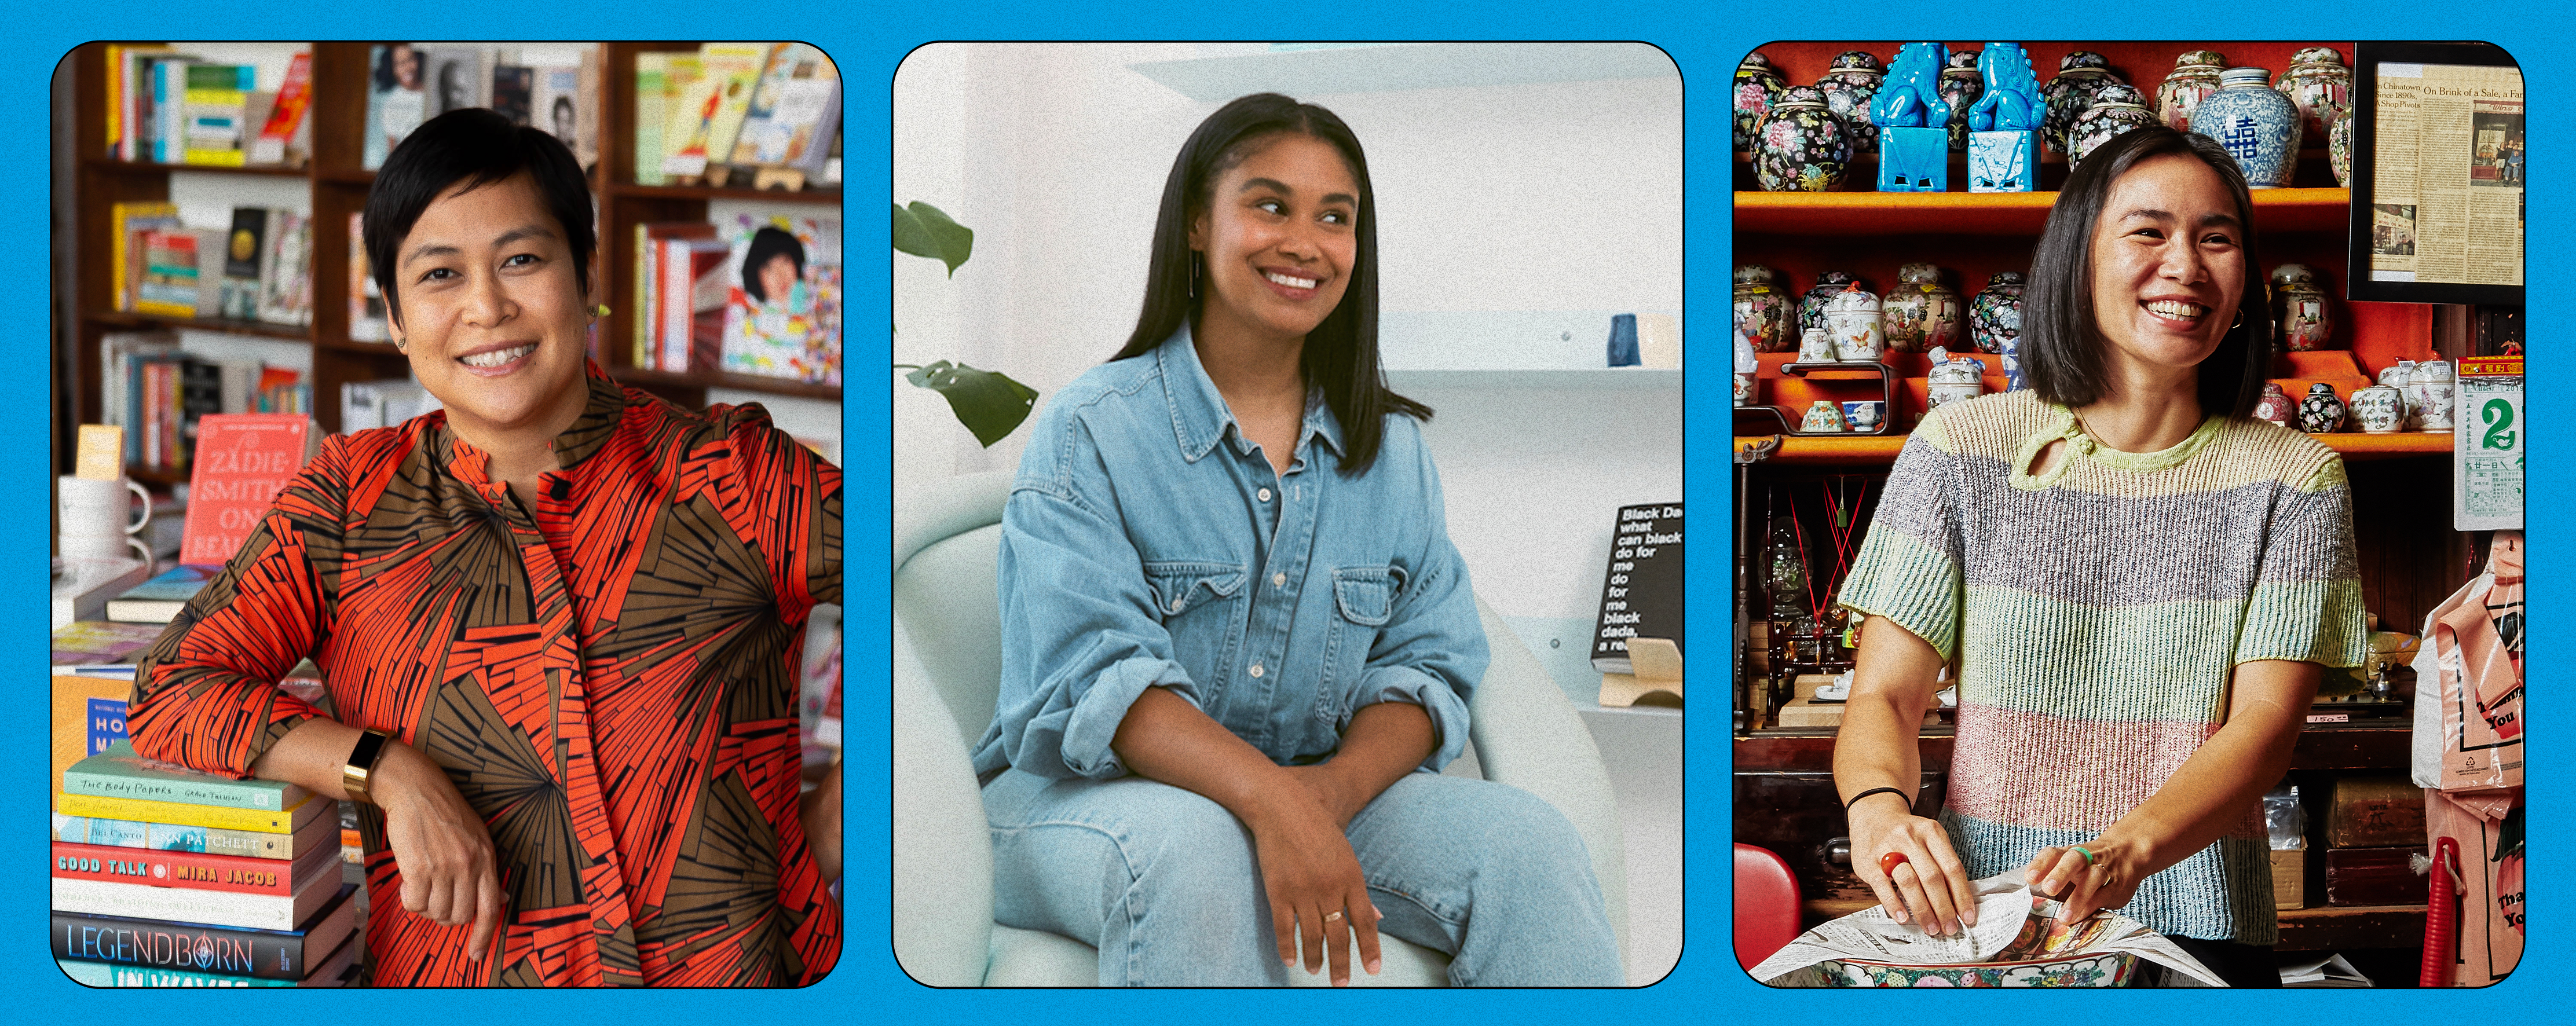 Three separate pictures of three businesswomen are tied together using a light blue color. They're all smiling and happy, shot within their businesses